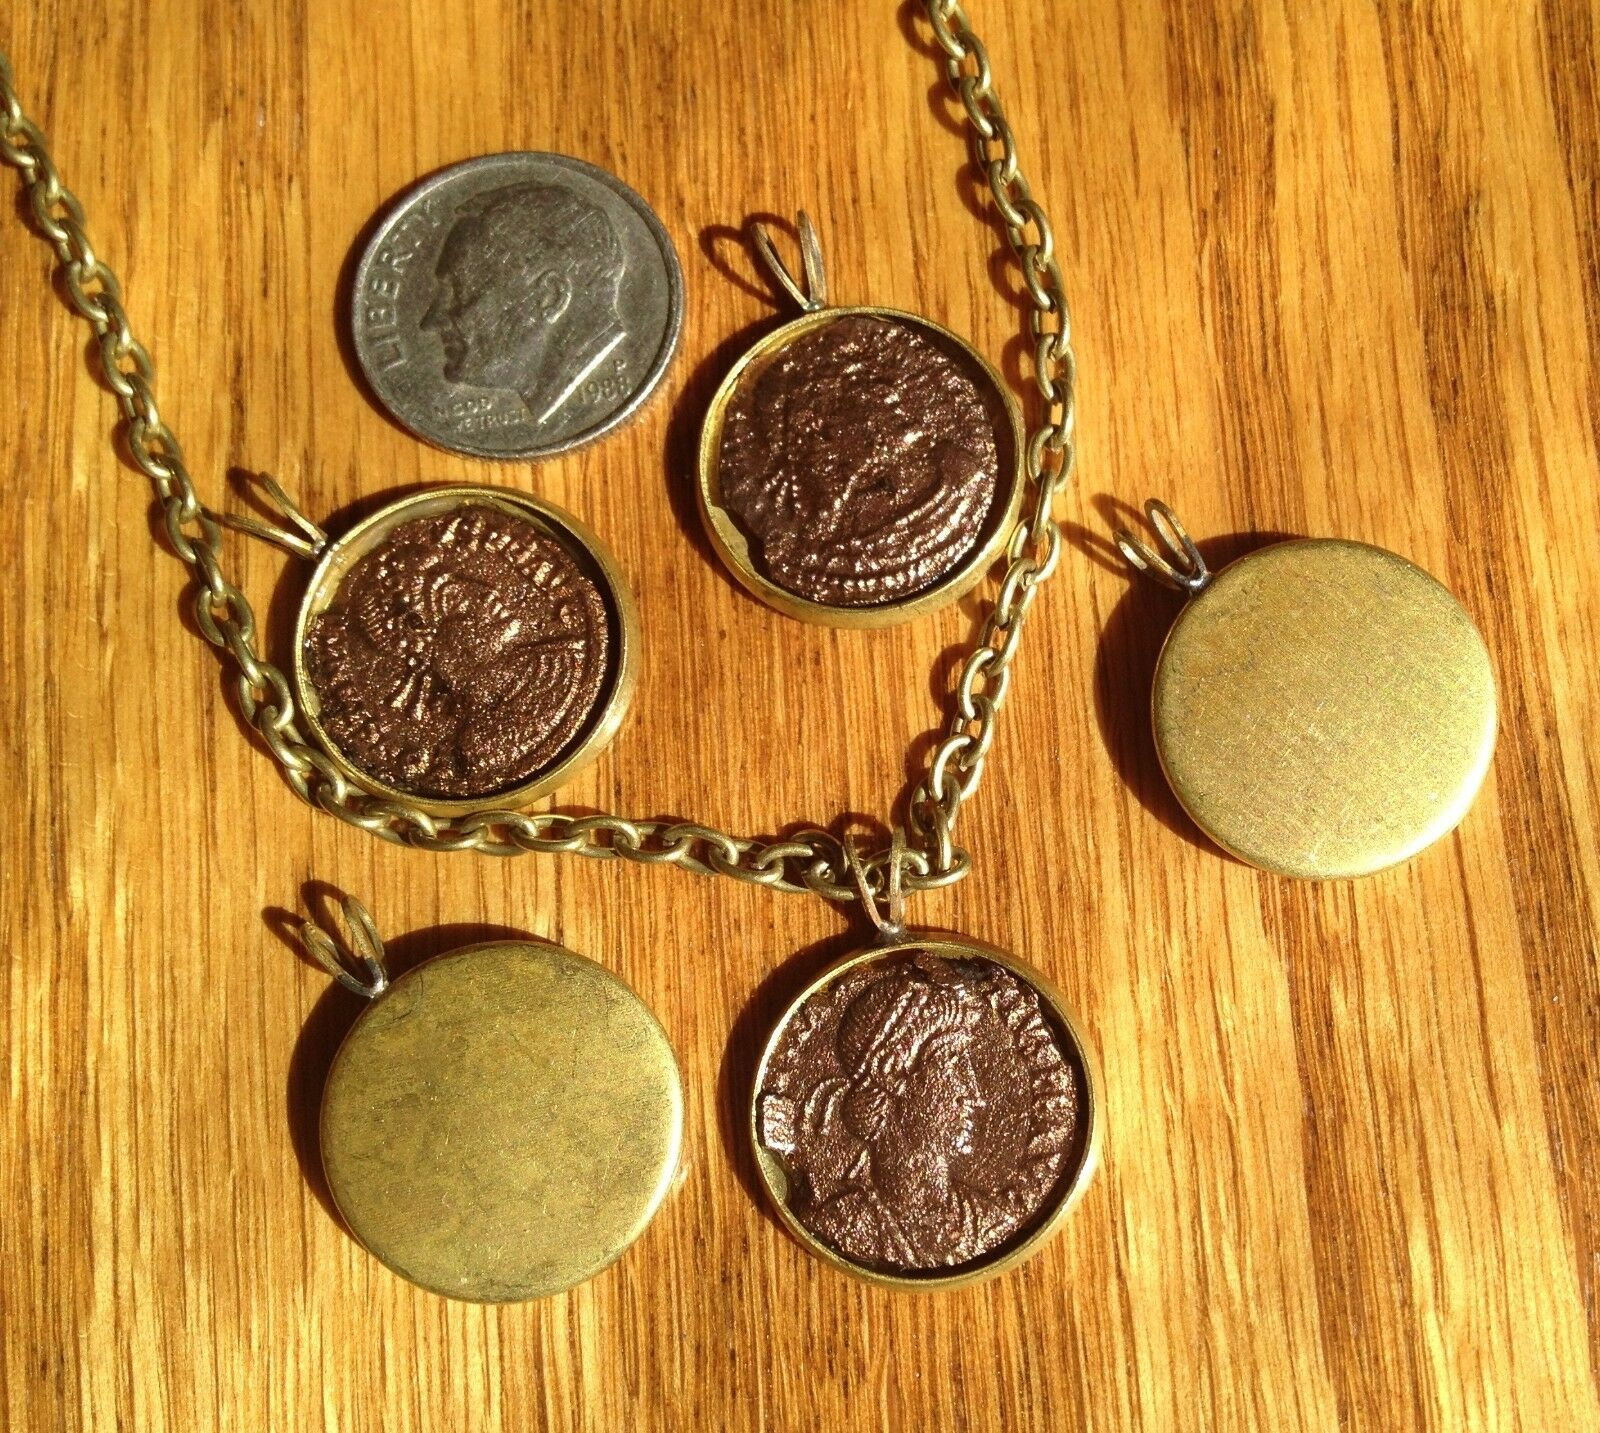 jewelry by collectible for id ancient choker sale f more furniture roman at carolee curiosities coin collectibles master omega gold necklace